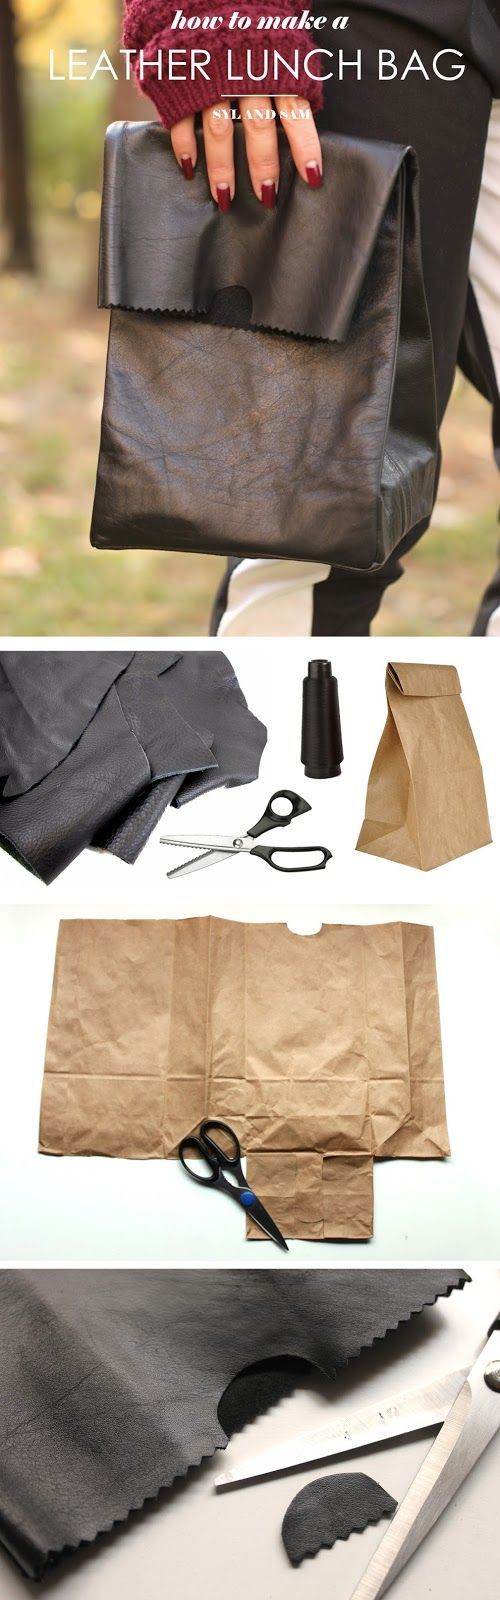 Learn how to make your own leather lunch bag. Inspired by designer fold over bag by Jil Sander.